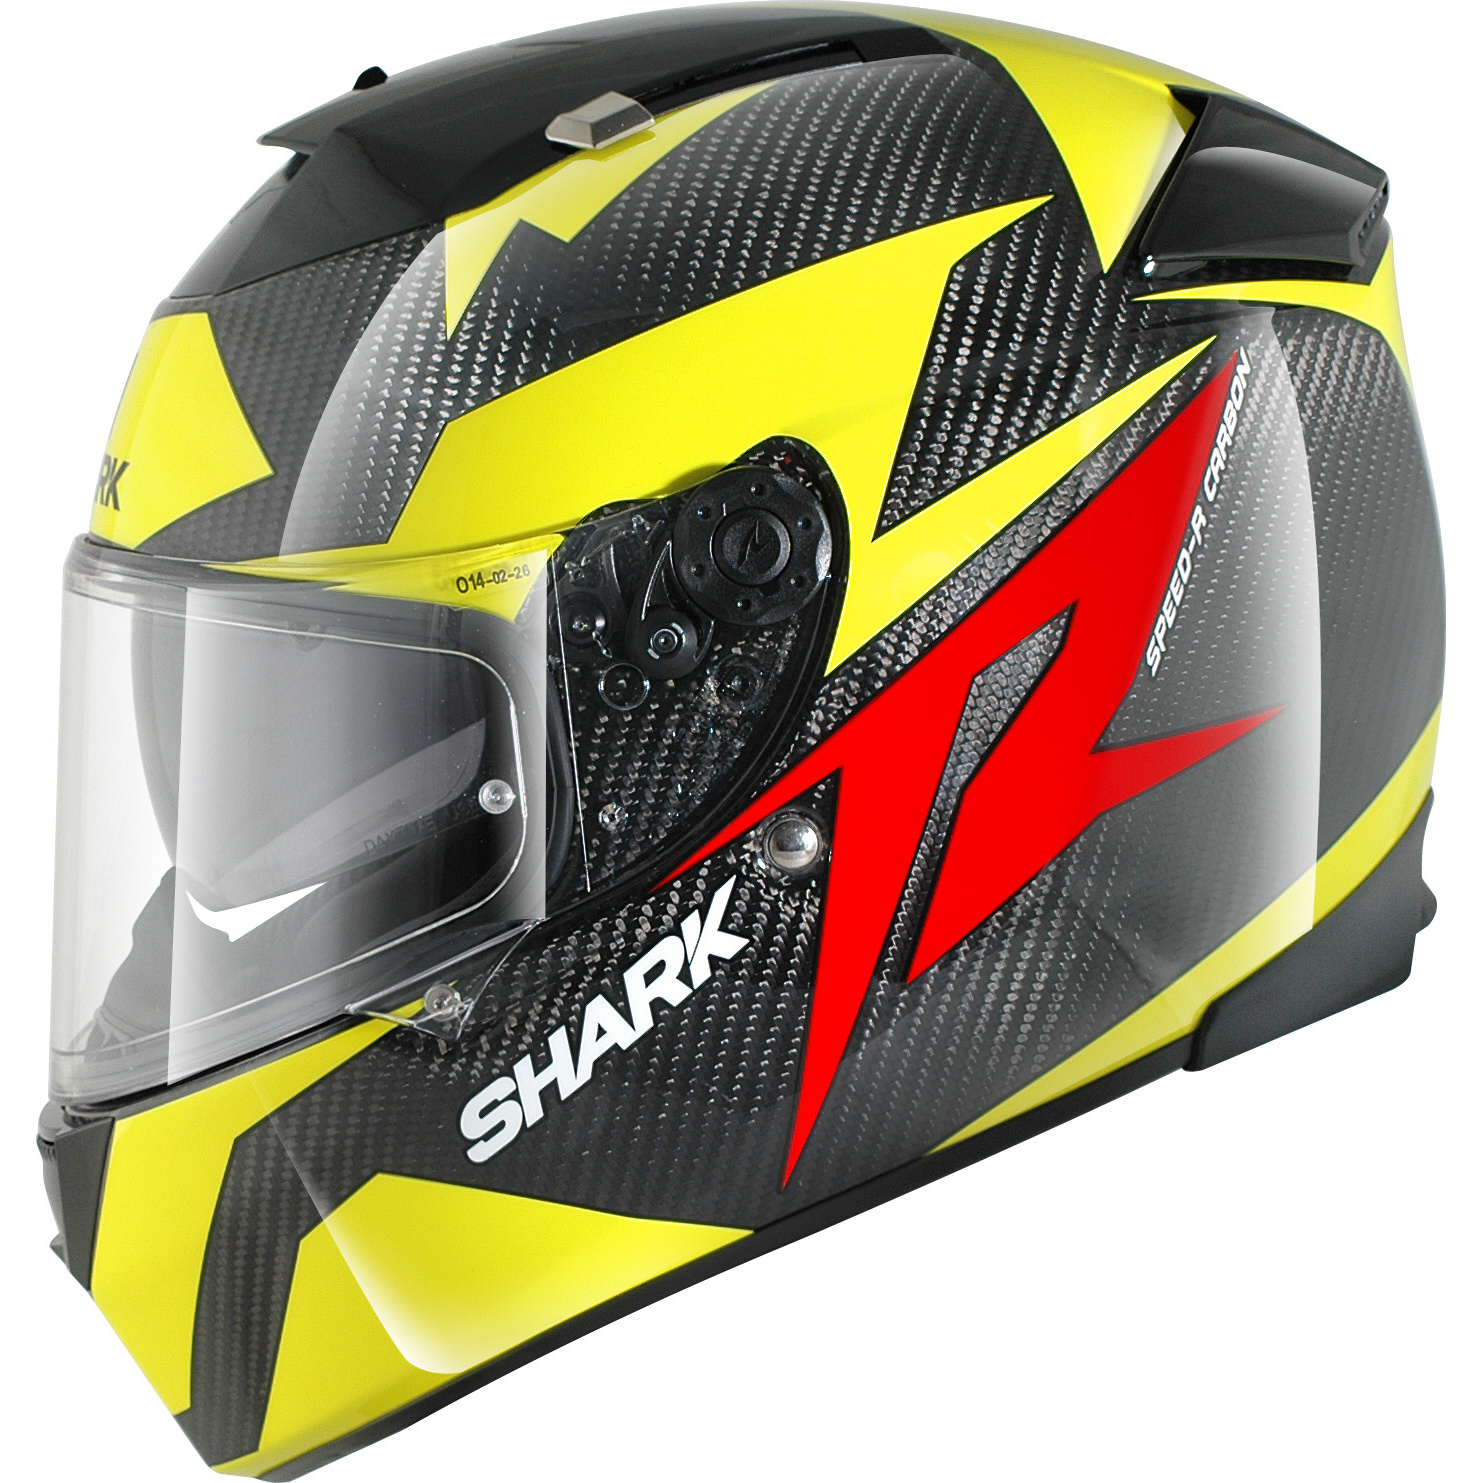 shark speed r carbon fibre run sun visor full face motorbike motorcycle helmet ebay. Black Bedroom Furniture Sets. Home Design Ideas